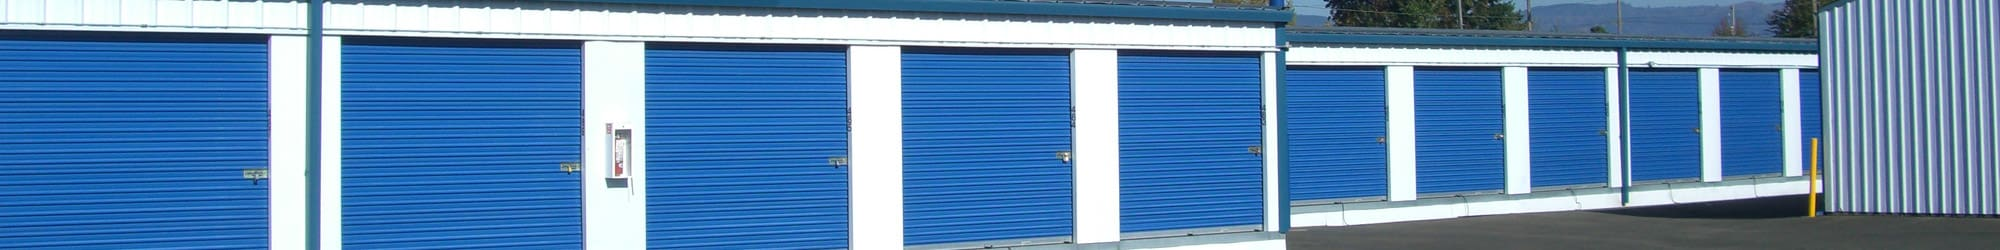 Reviews of self storage in Coos Bay, OR